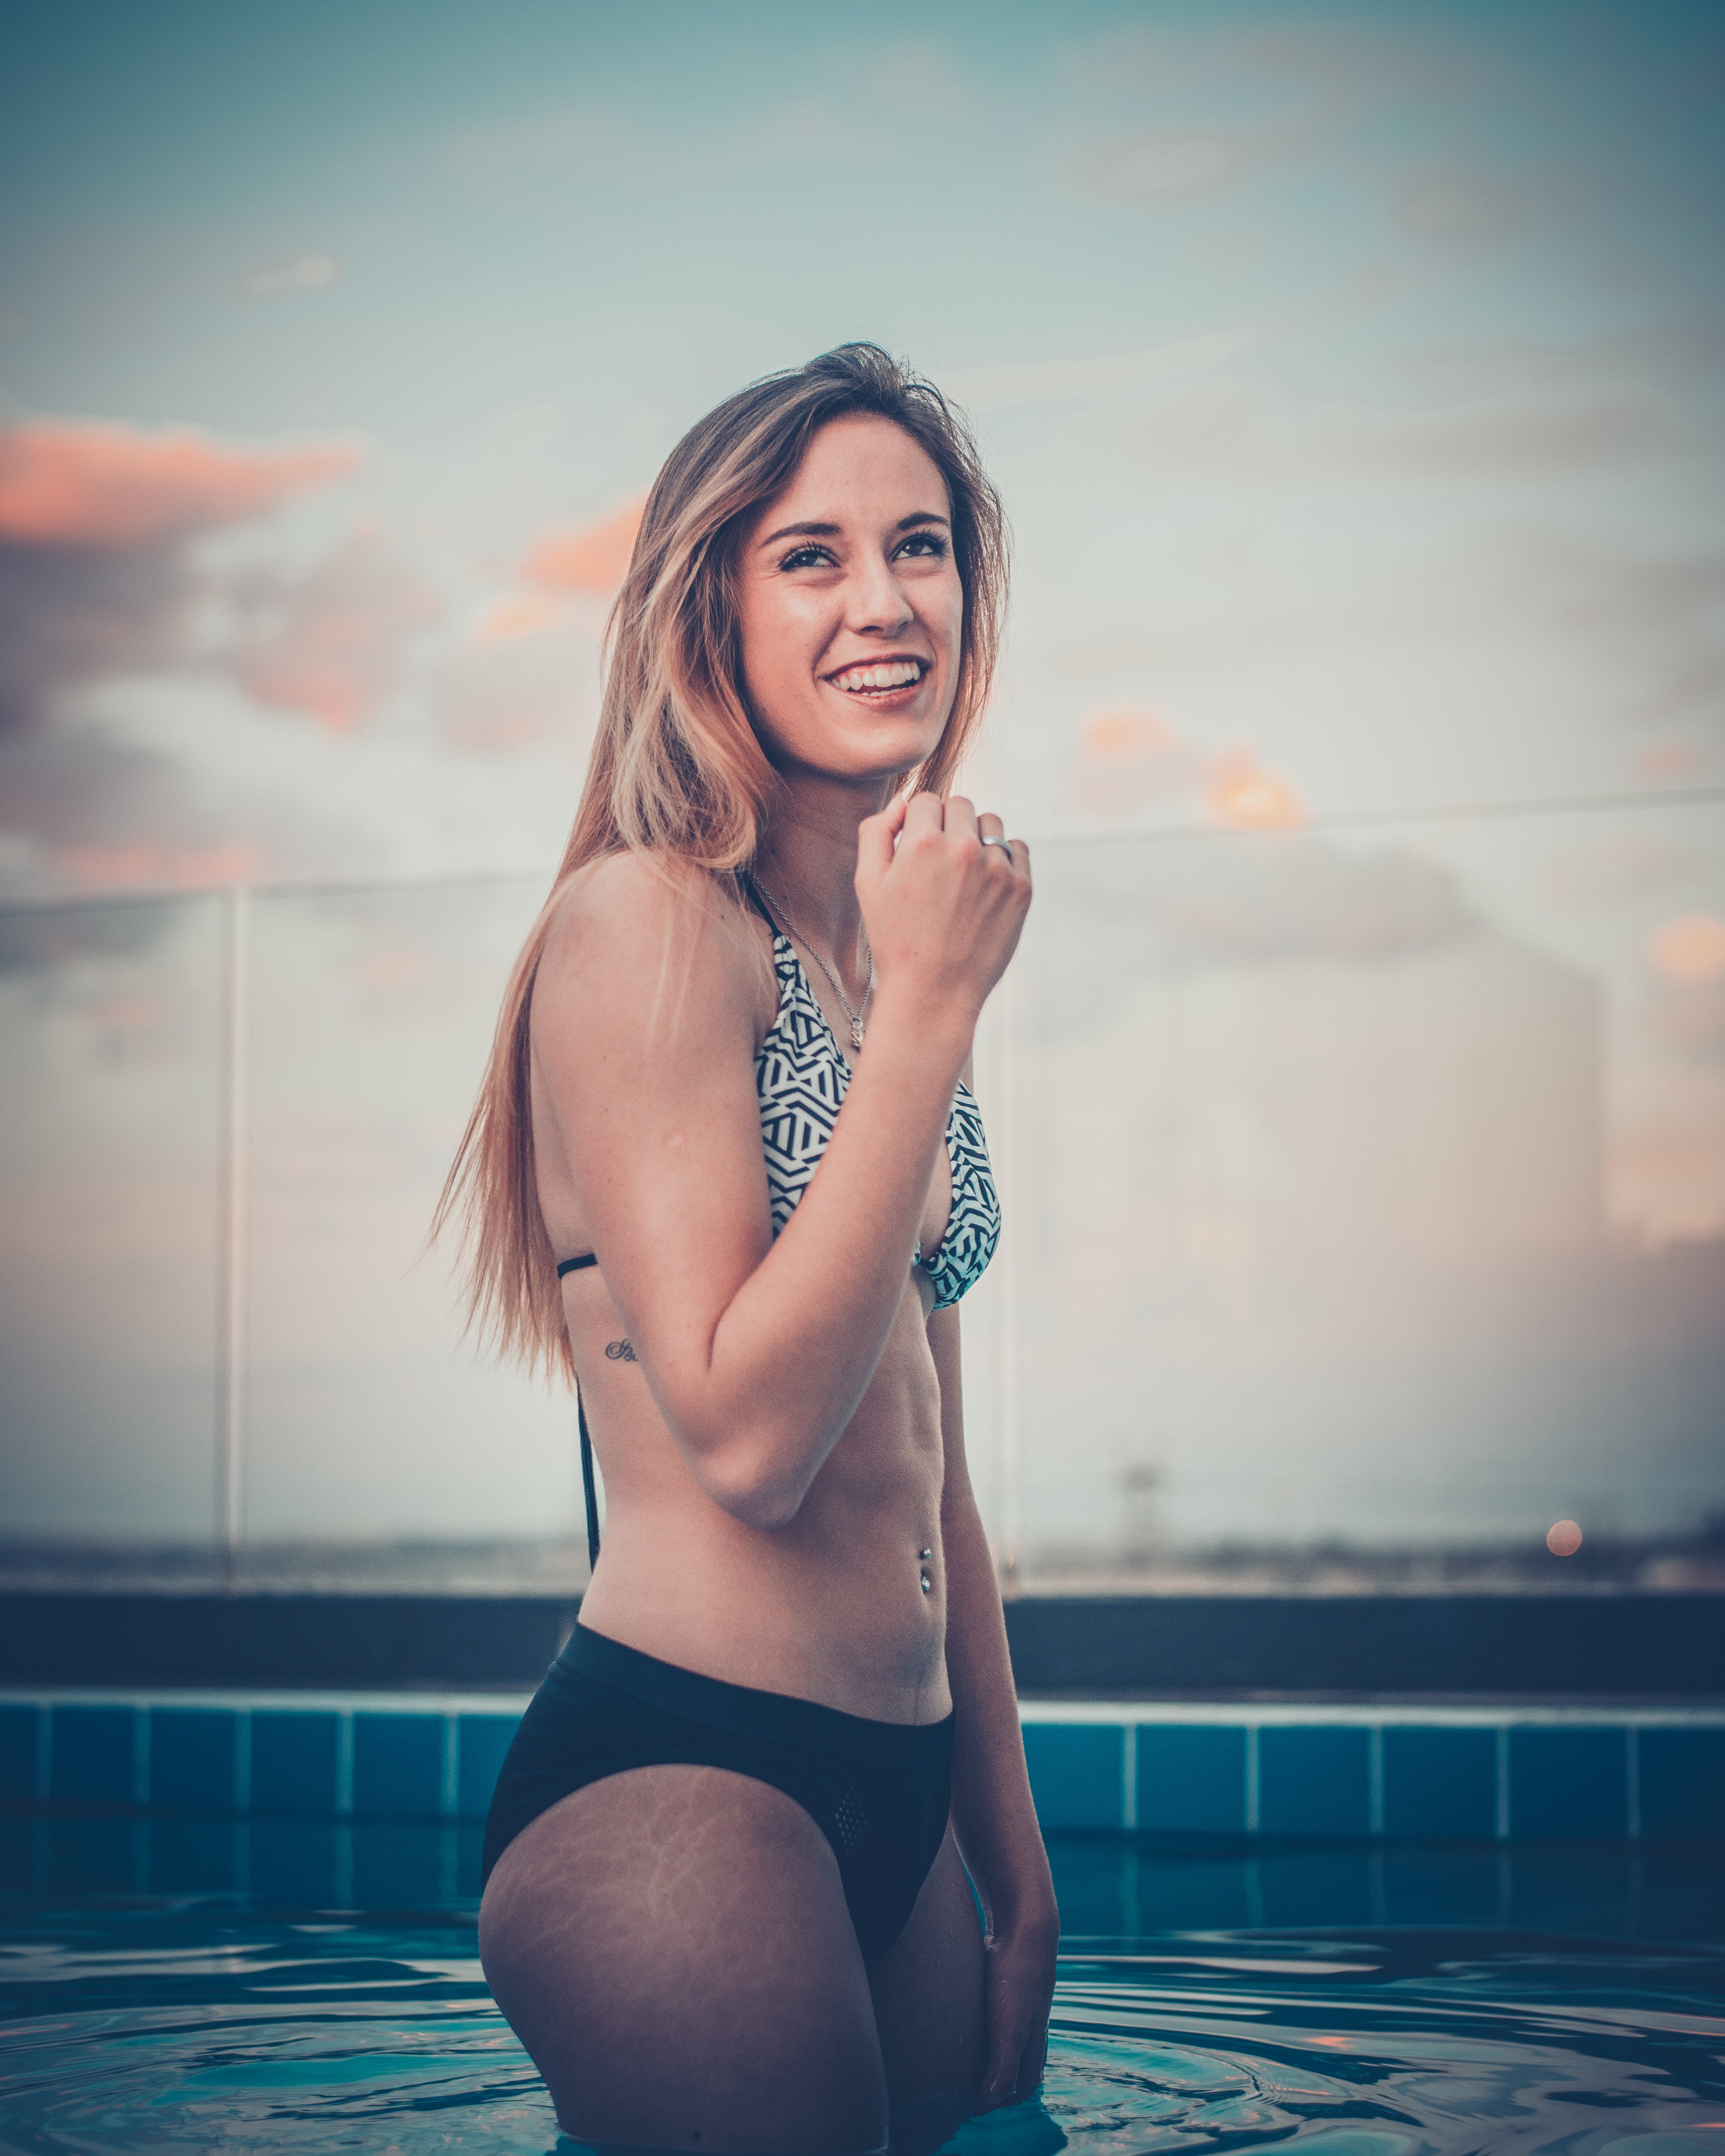 Smiling Woman Standing on Pool